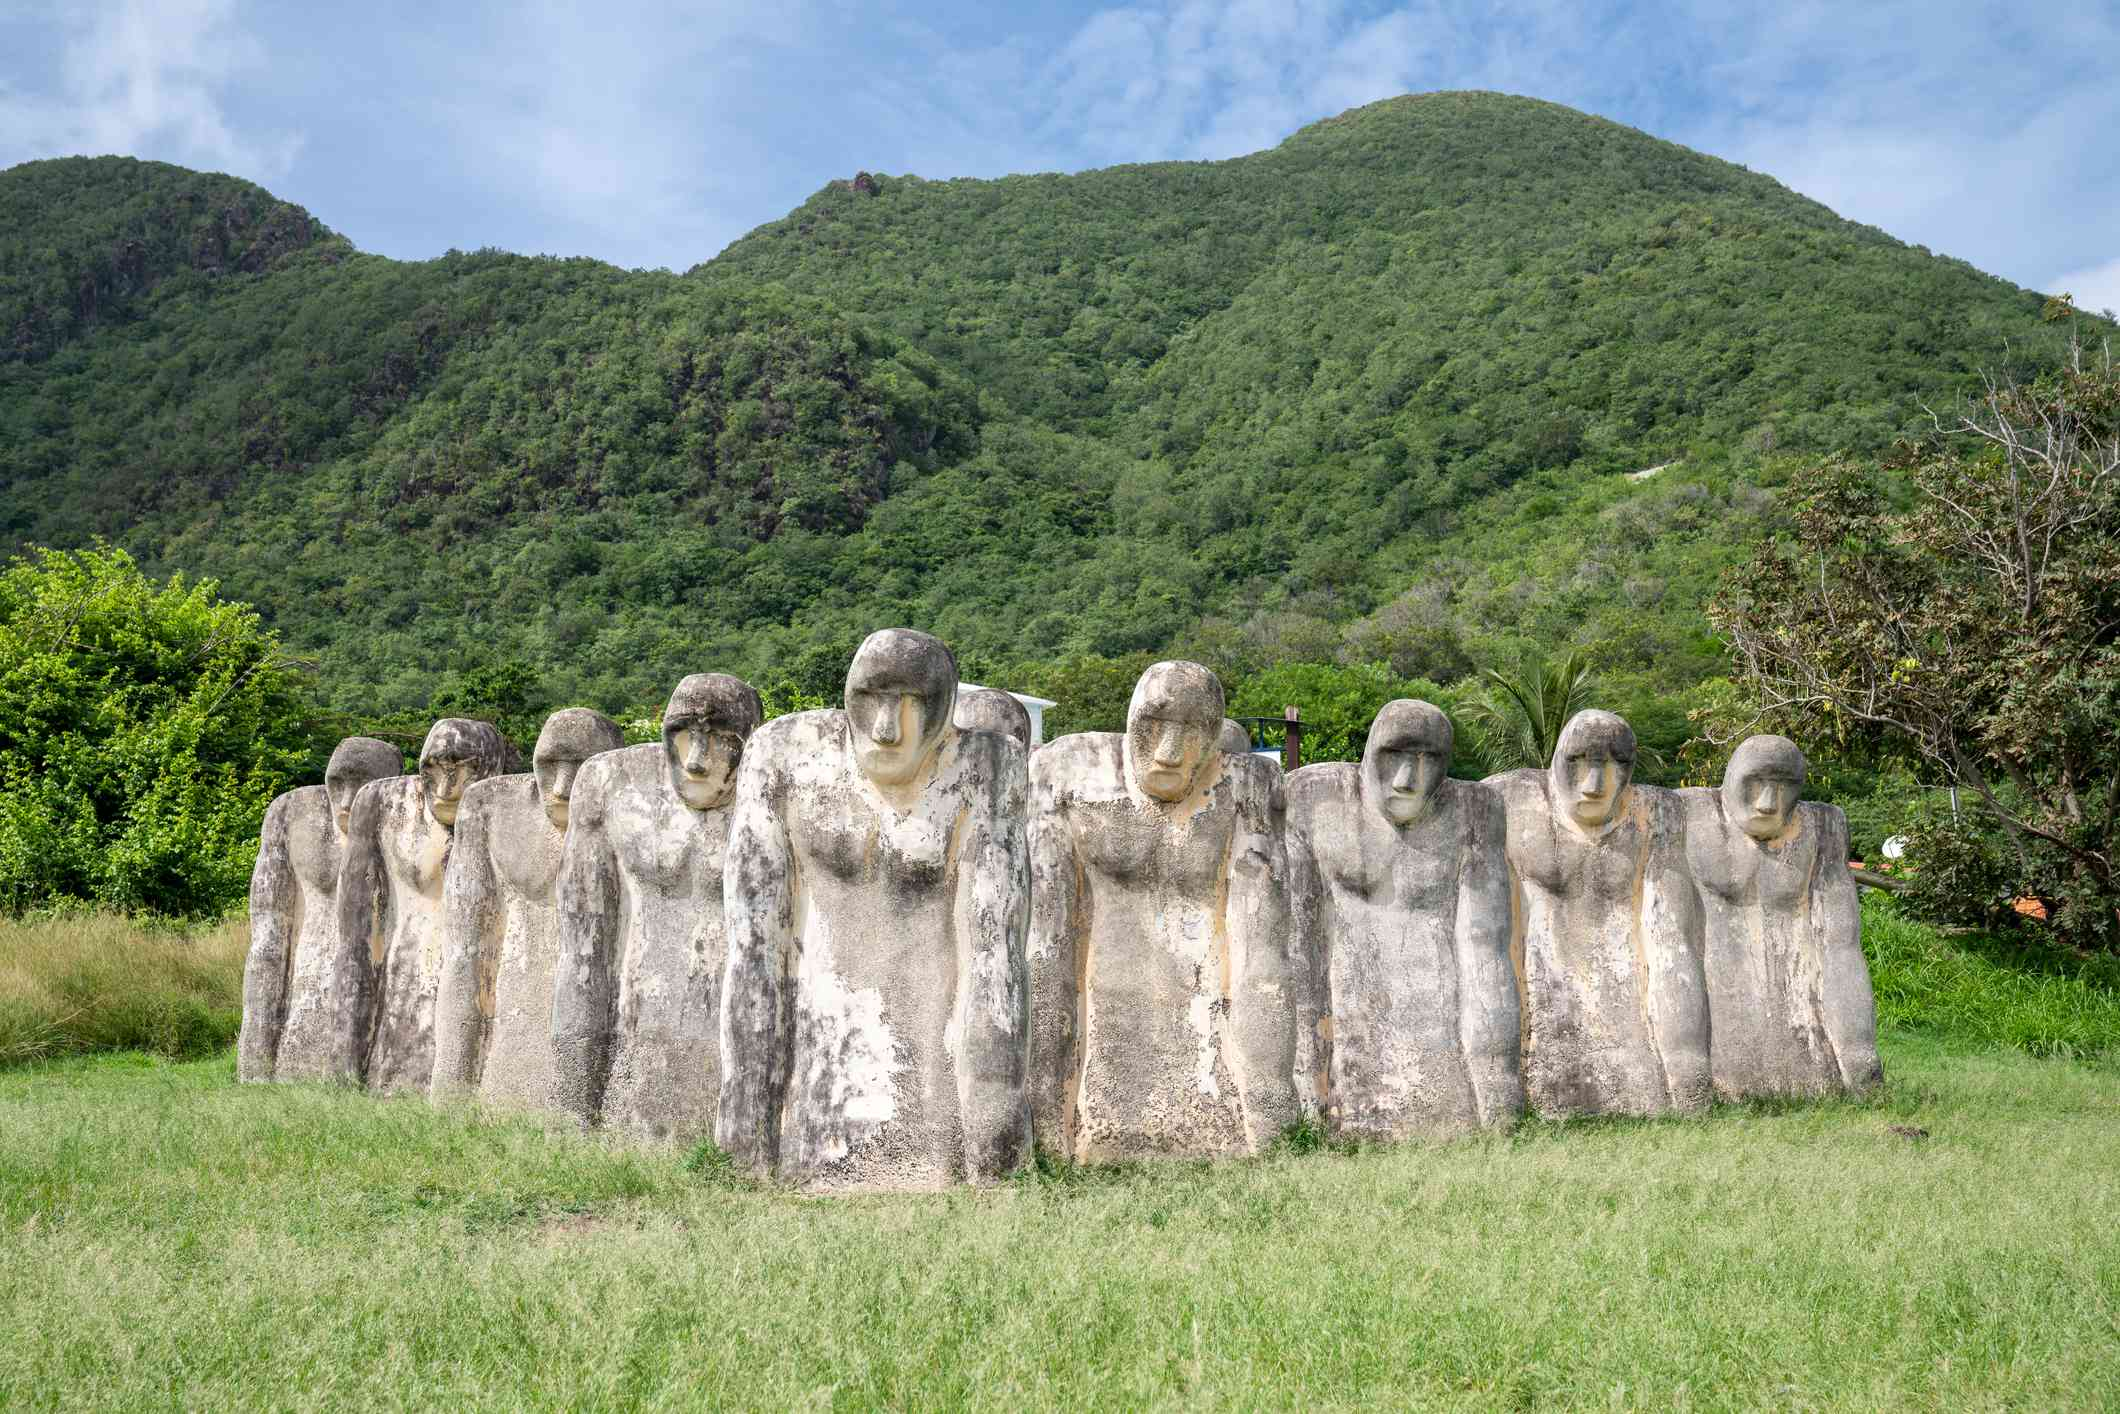 slaves monument witj statues in caribbean